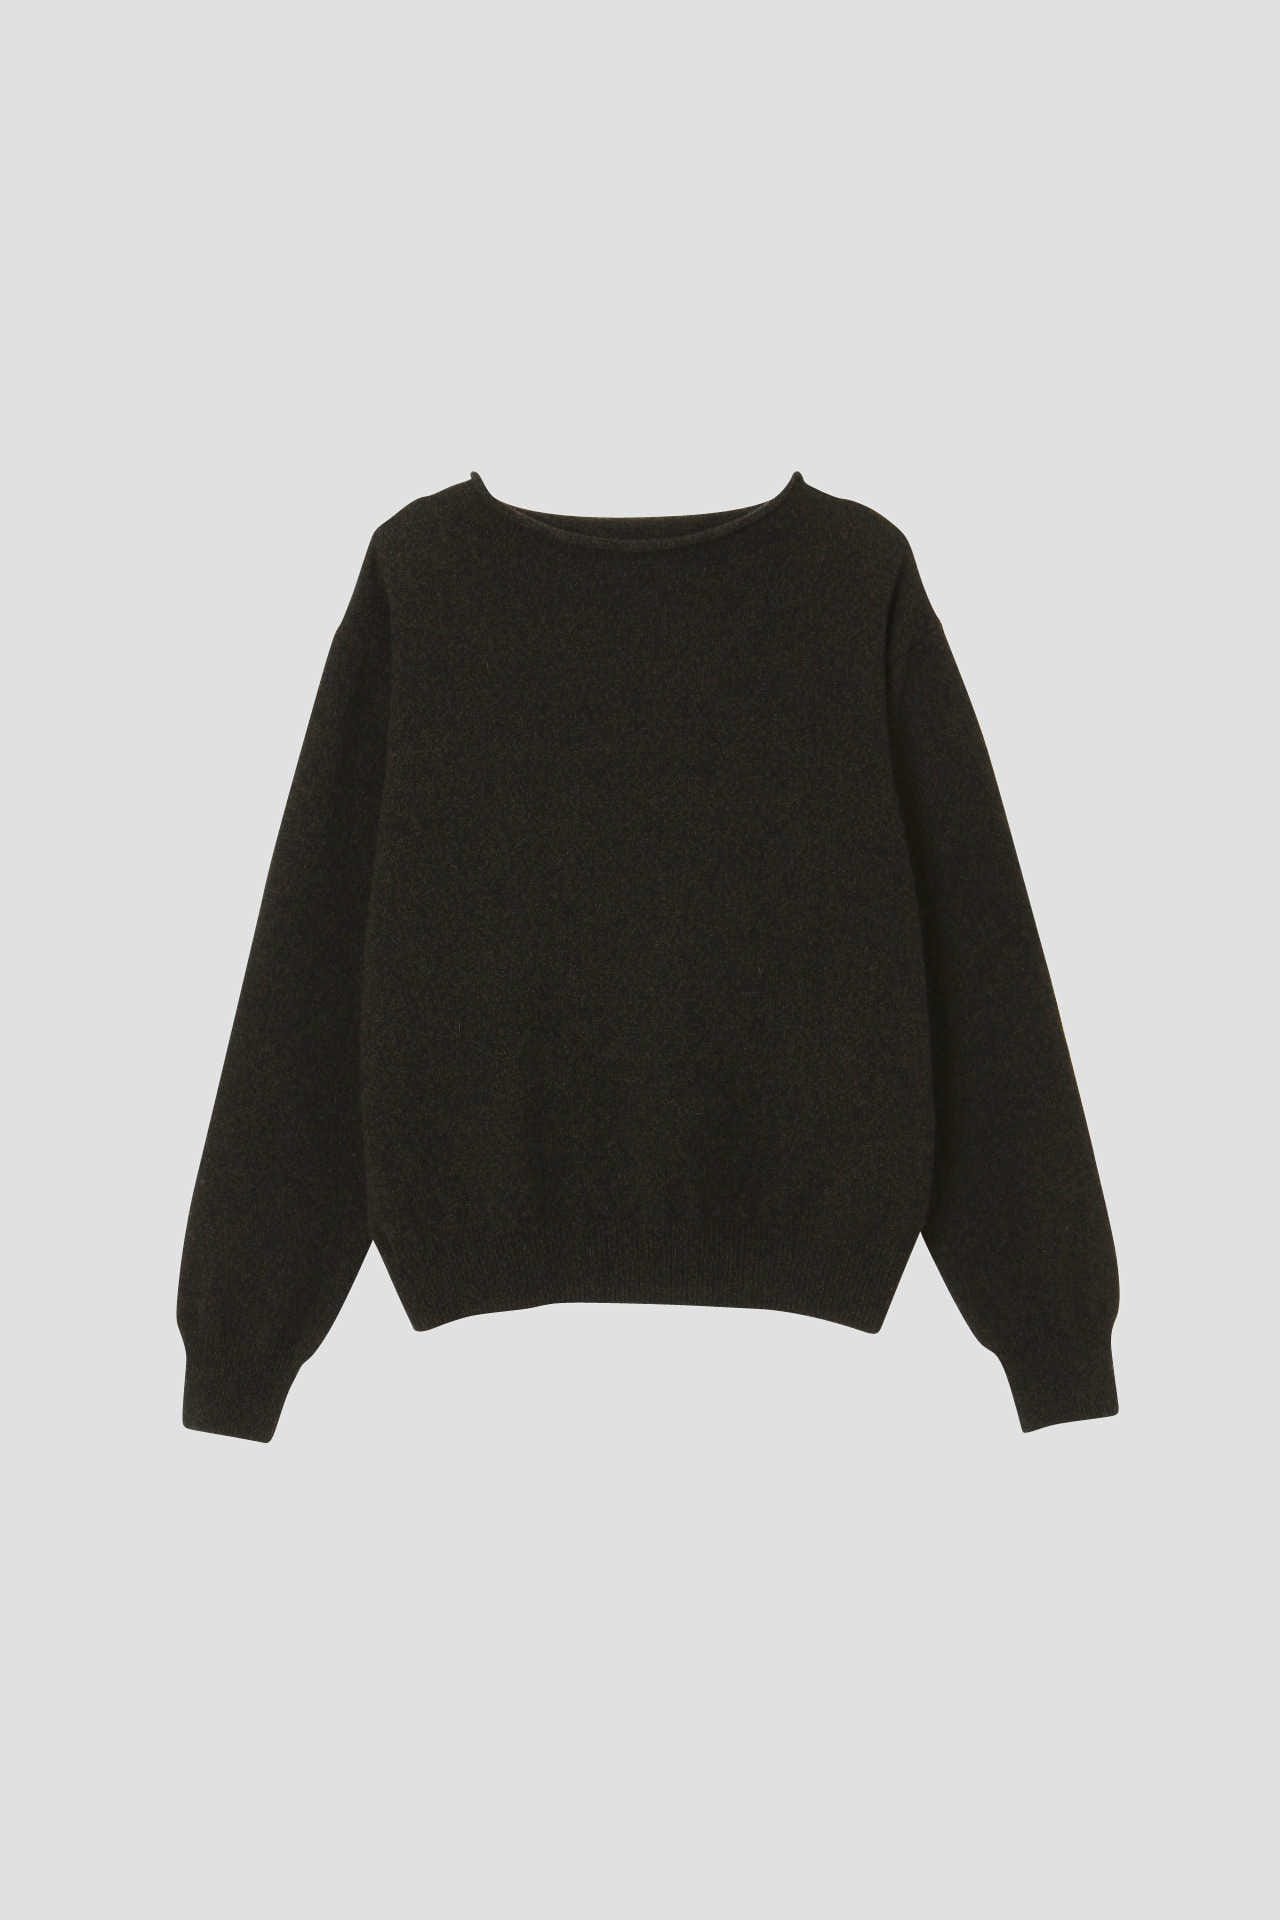 TWISTED WOOL CASHMERE JUMPER10